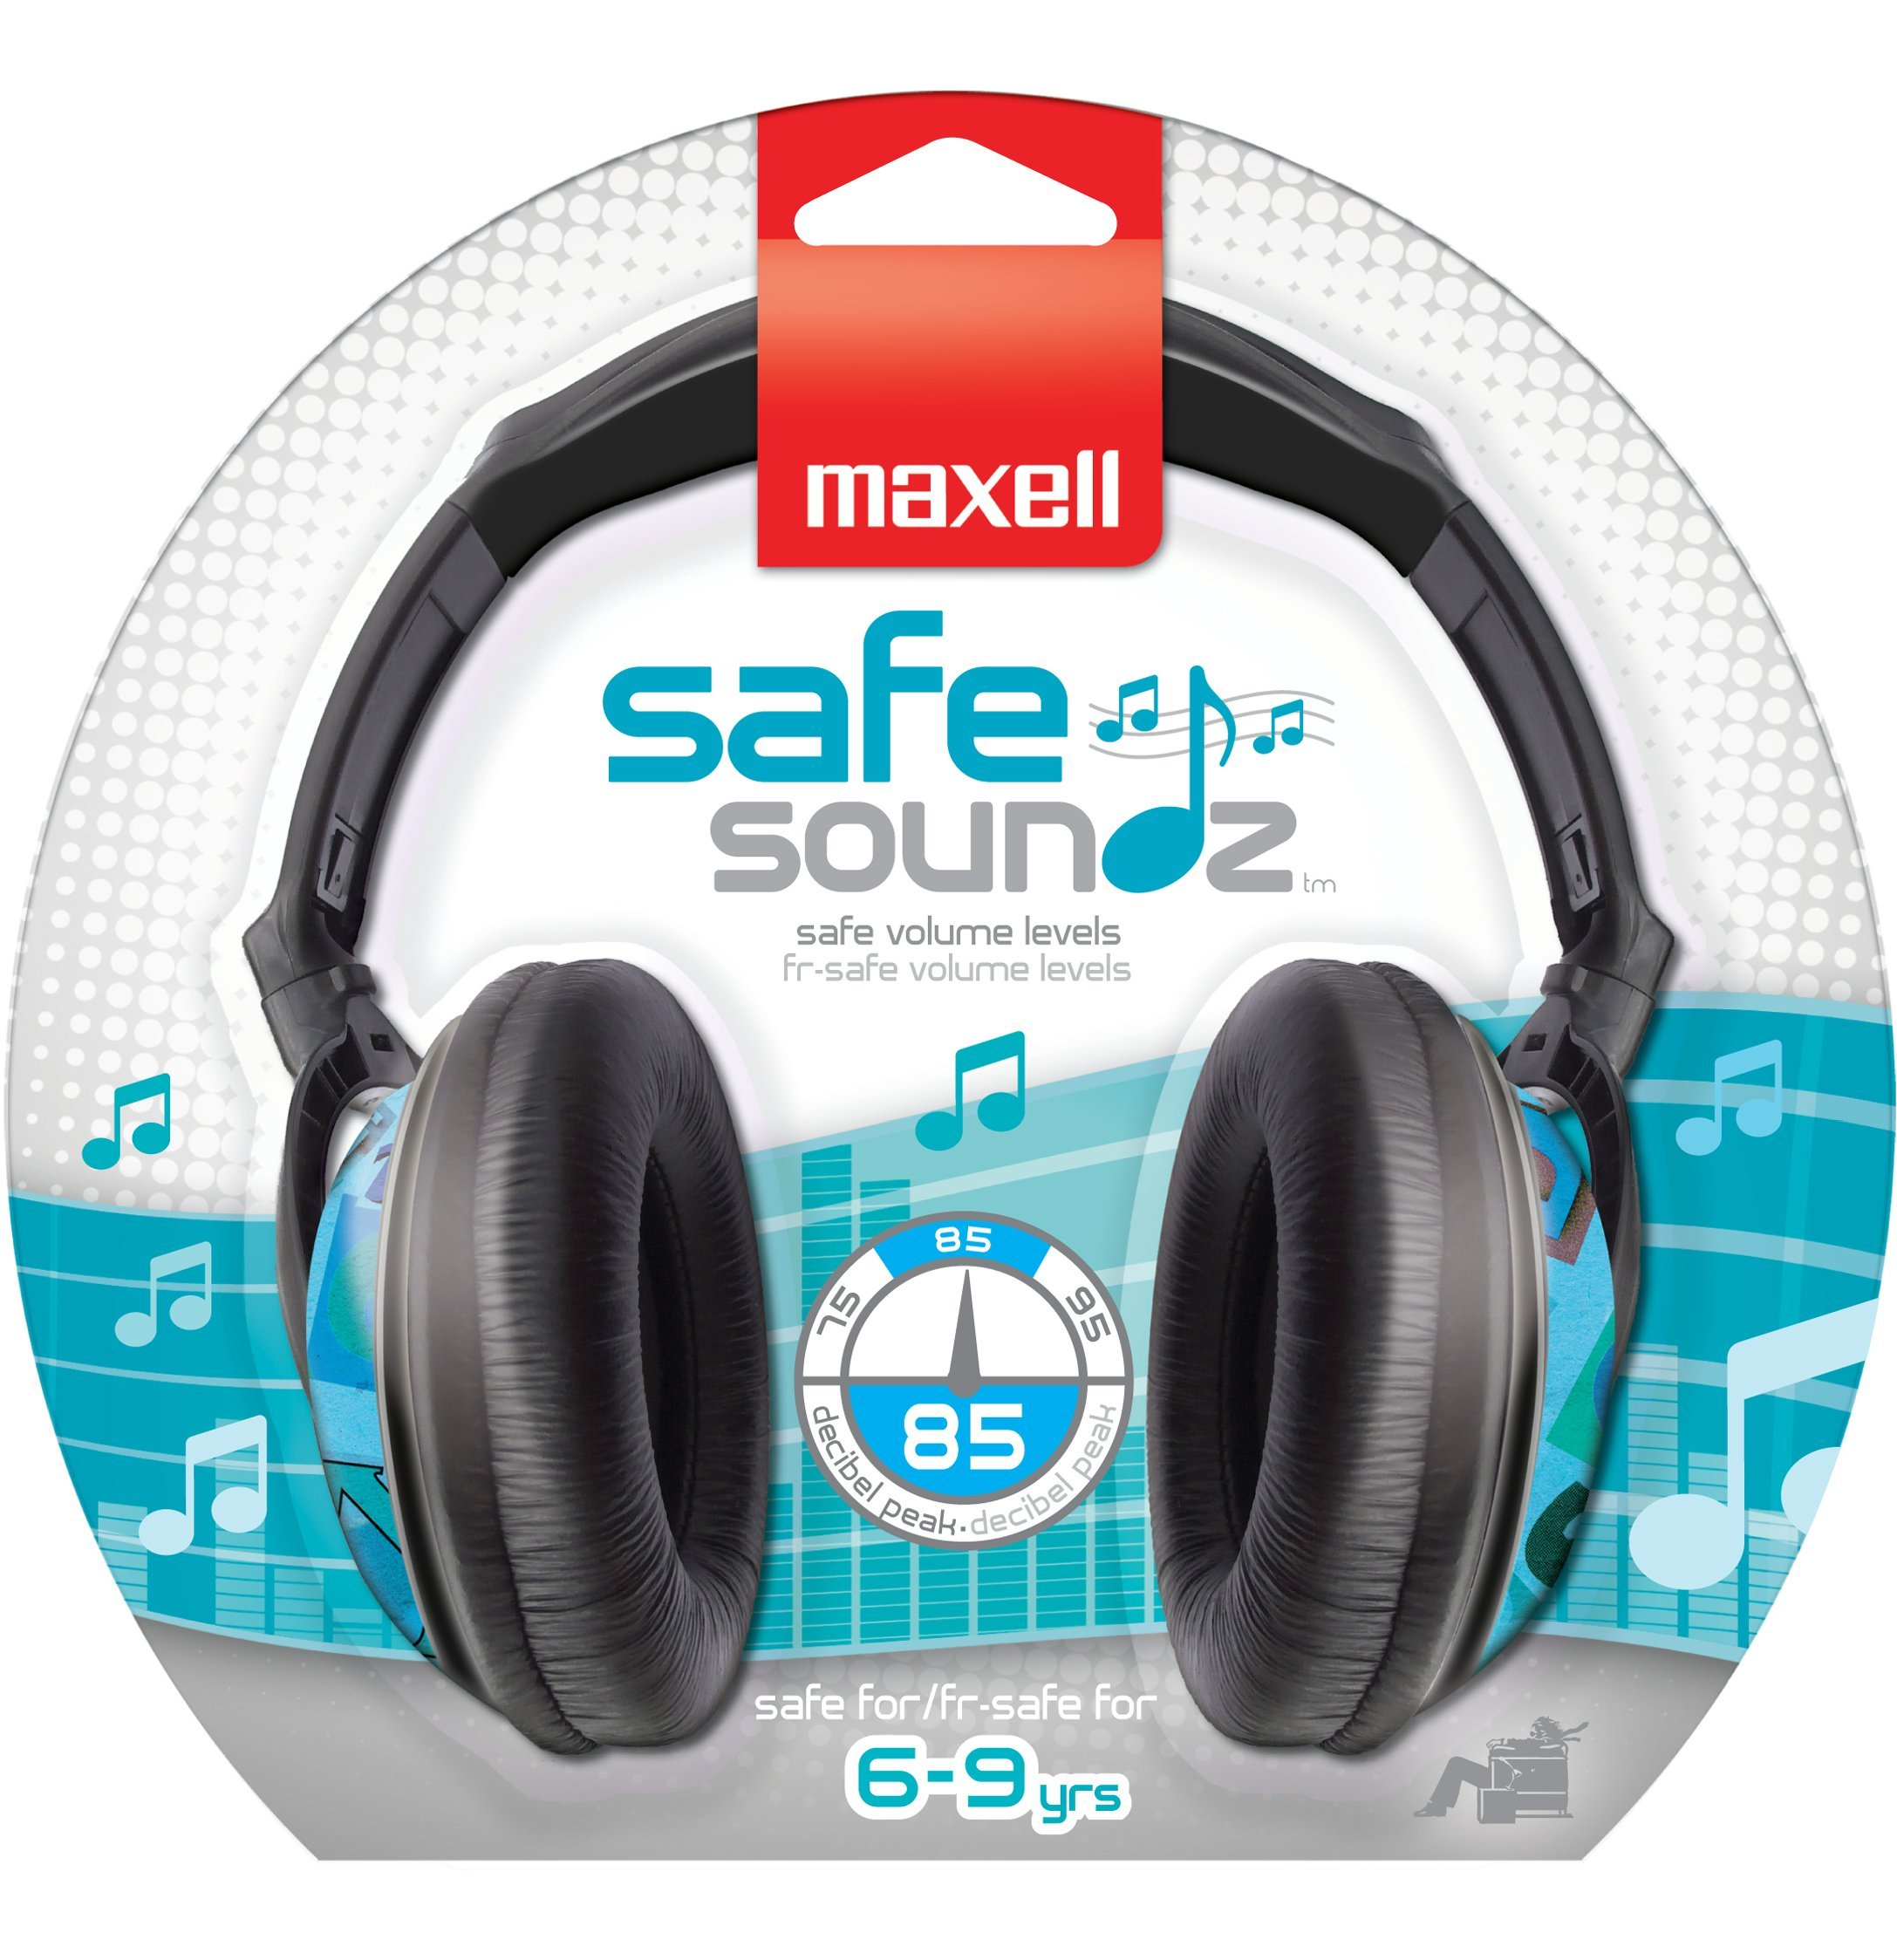 Maxell 190297 Wired Comfortable Over The Ears Safe Volume For Kids Safe Soundz Headphones 6-9 Boys